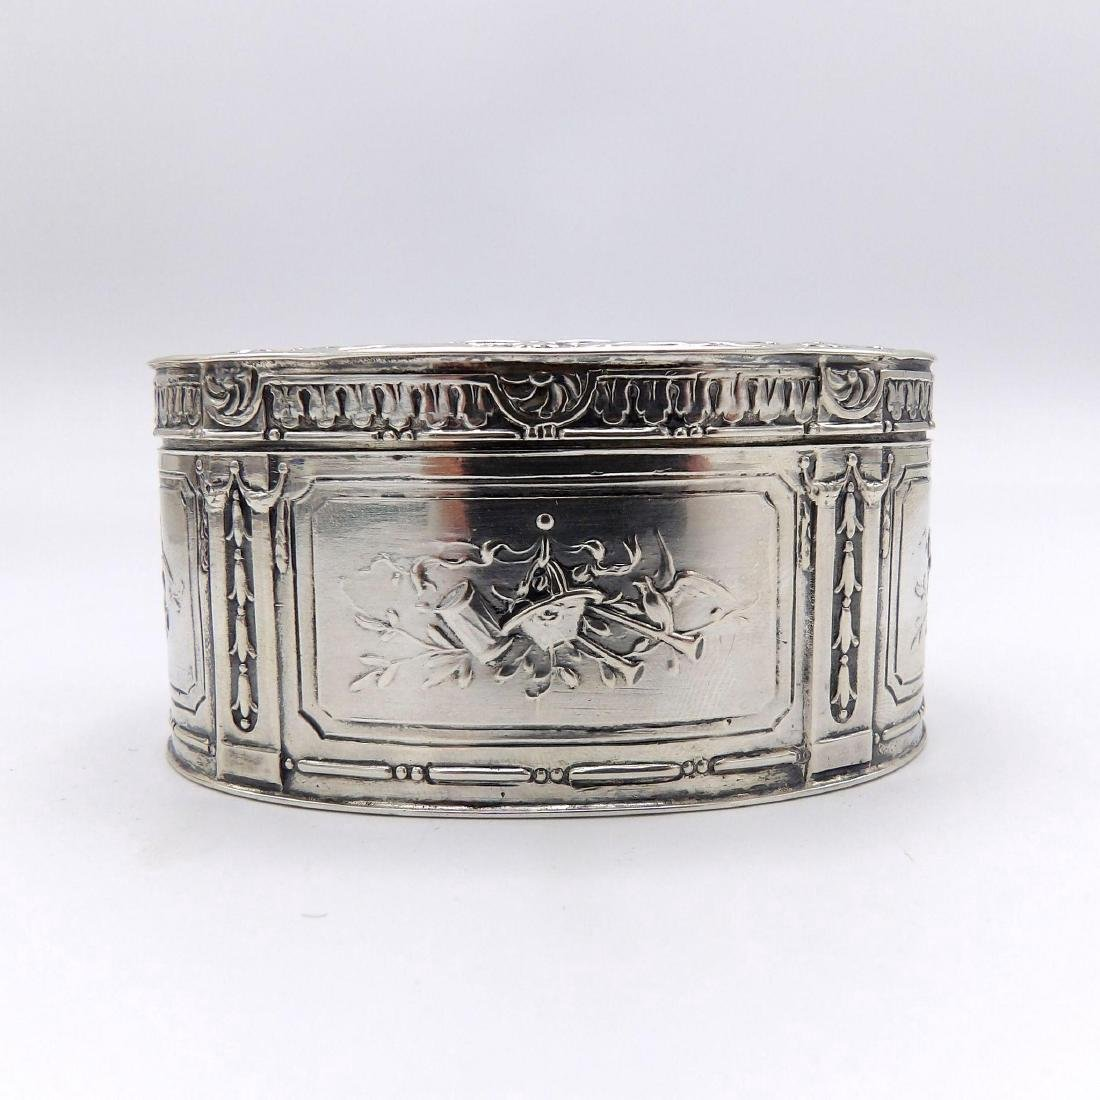 Antique Continental 830 Silver Oval Box, 1890 - 5